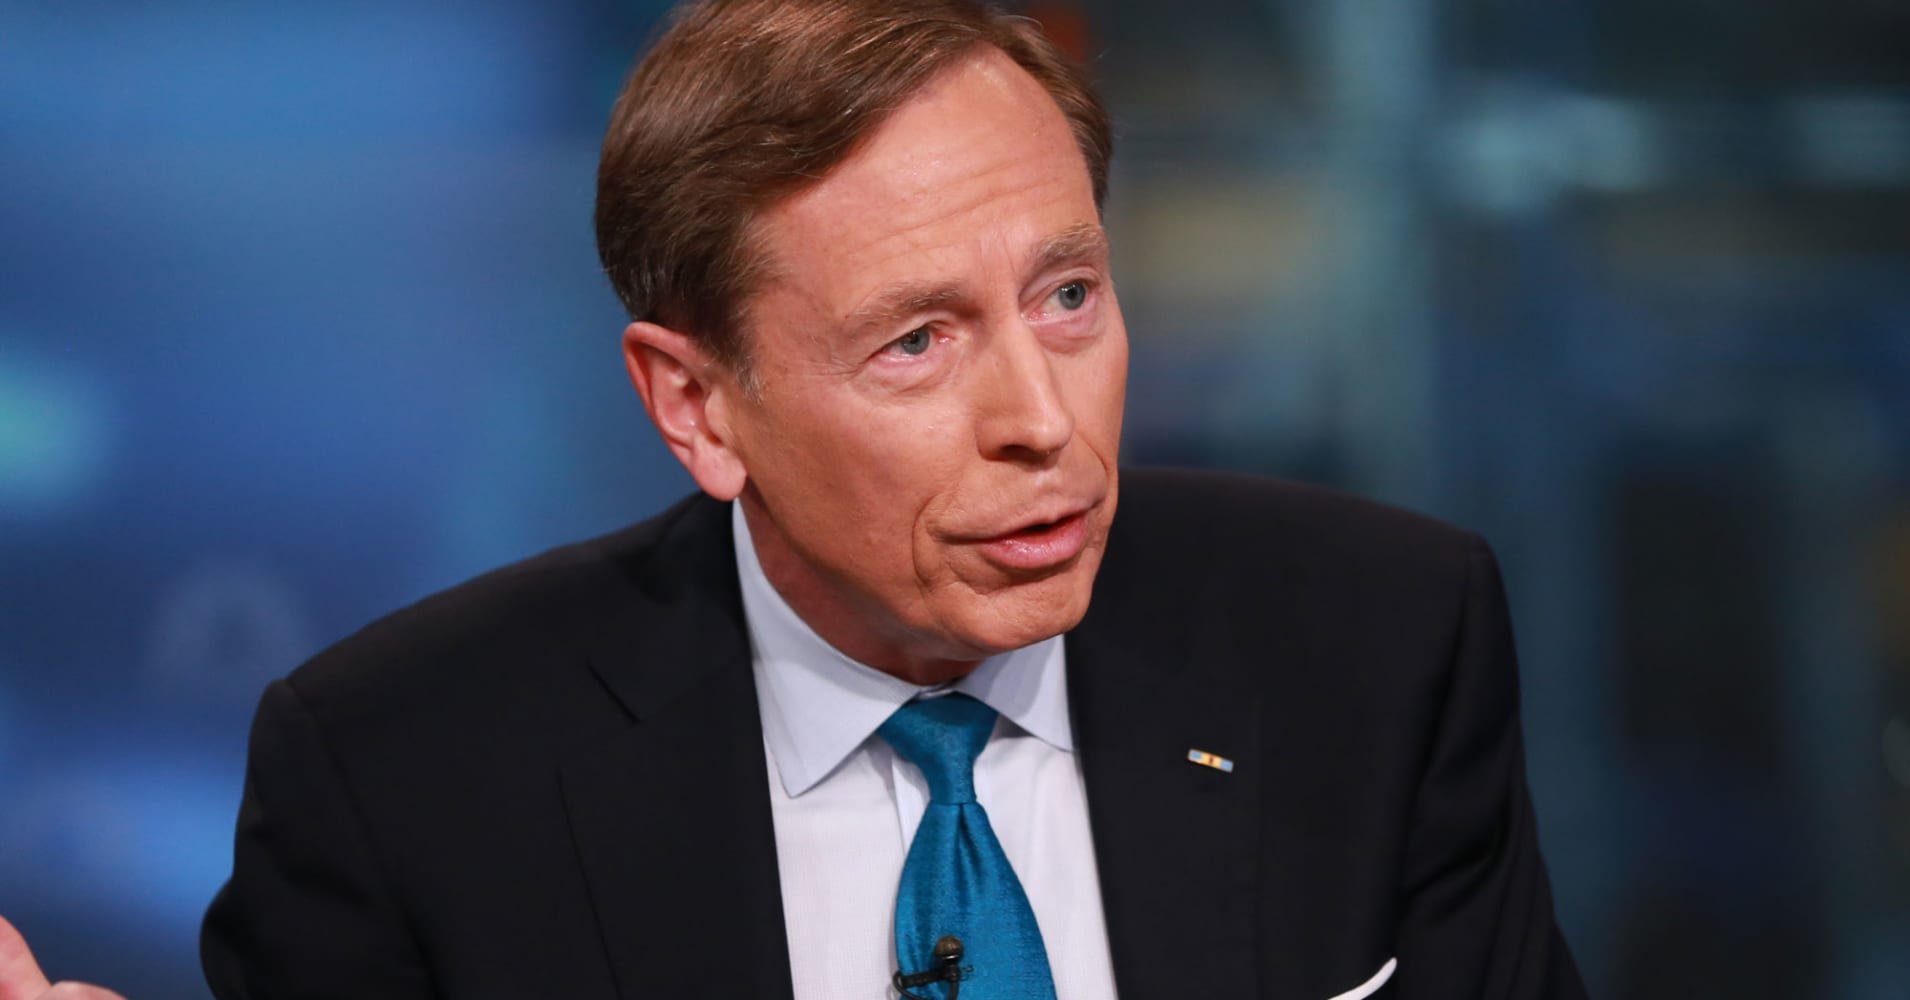 Trump meets Petraeus as battle over secretary of state continues